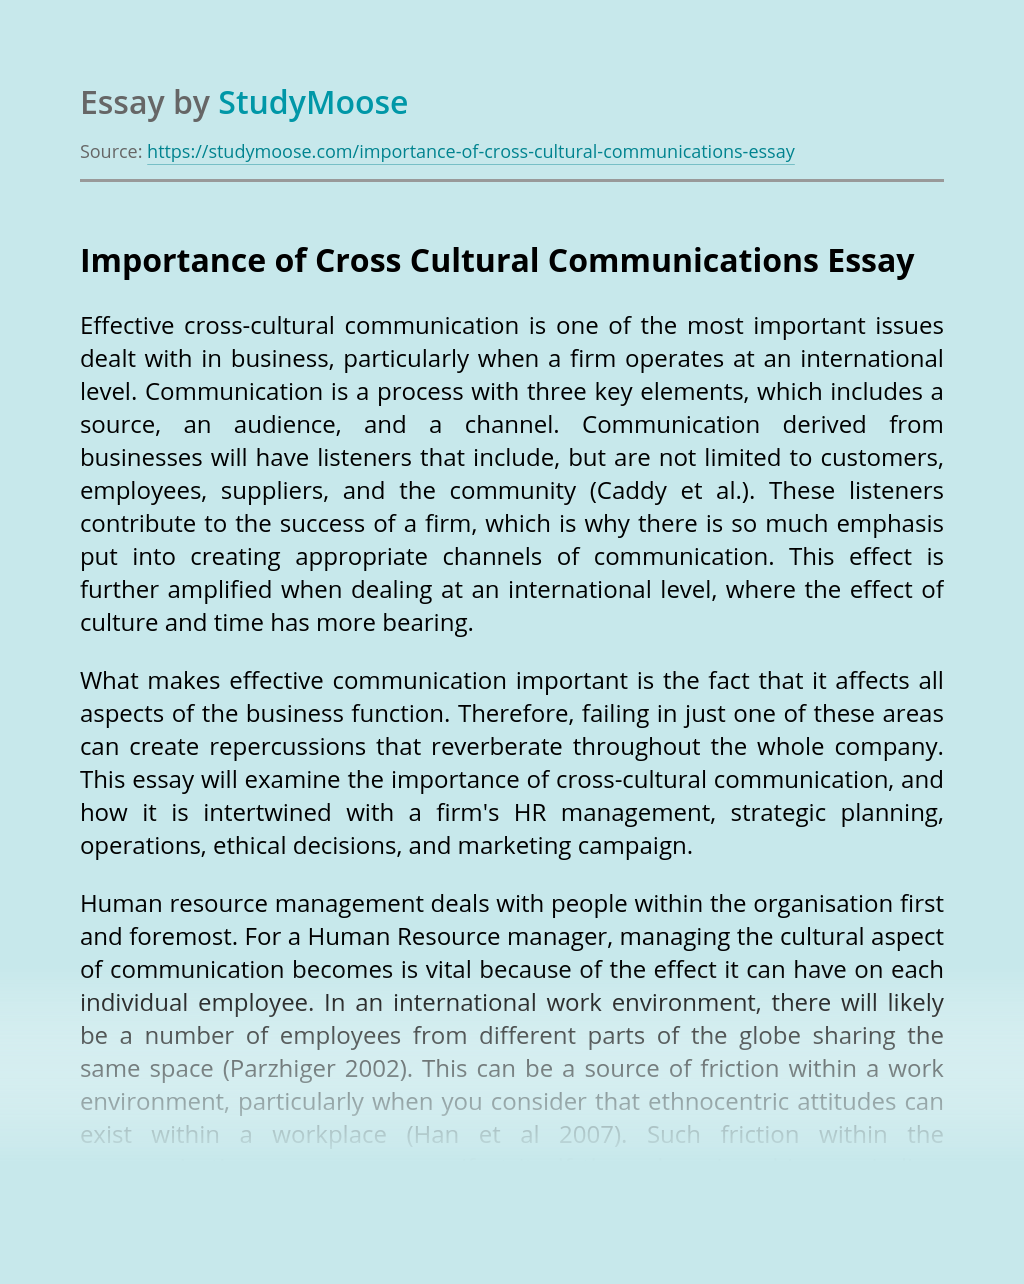 Importance of Cross Cultural Communications